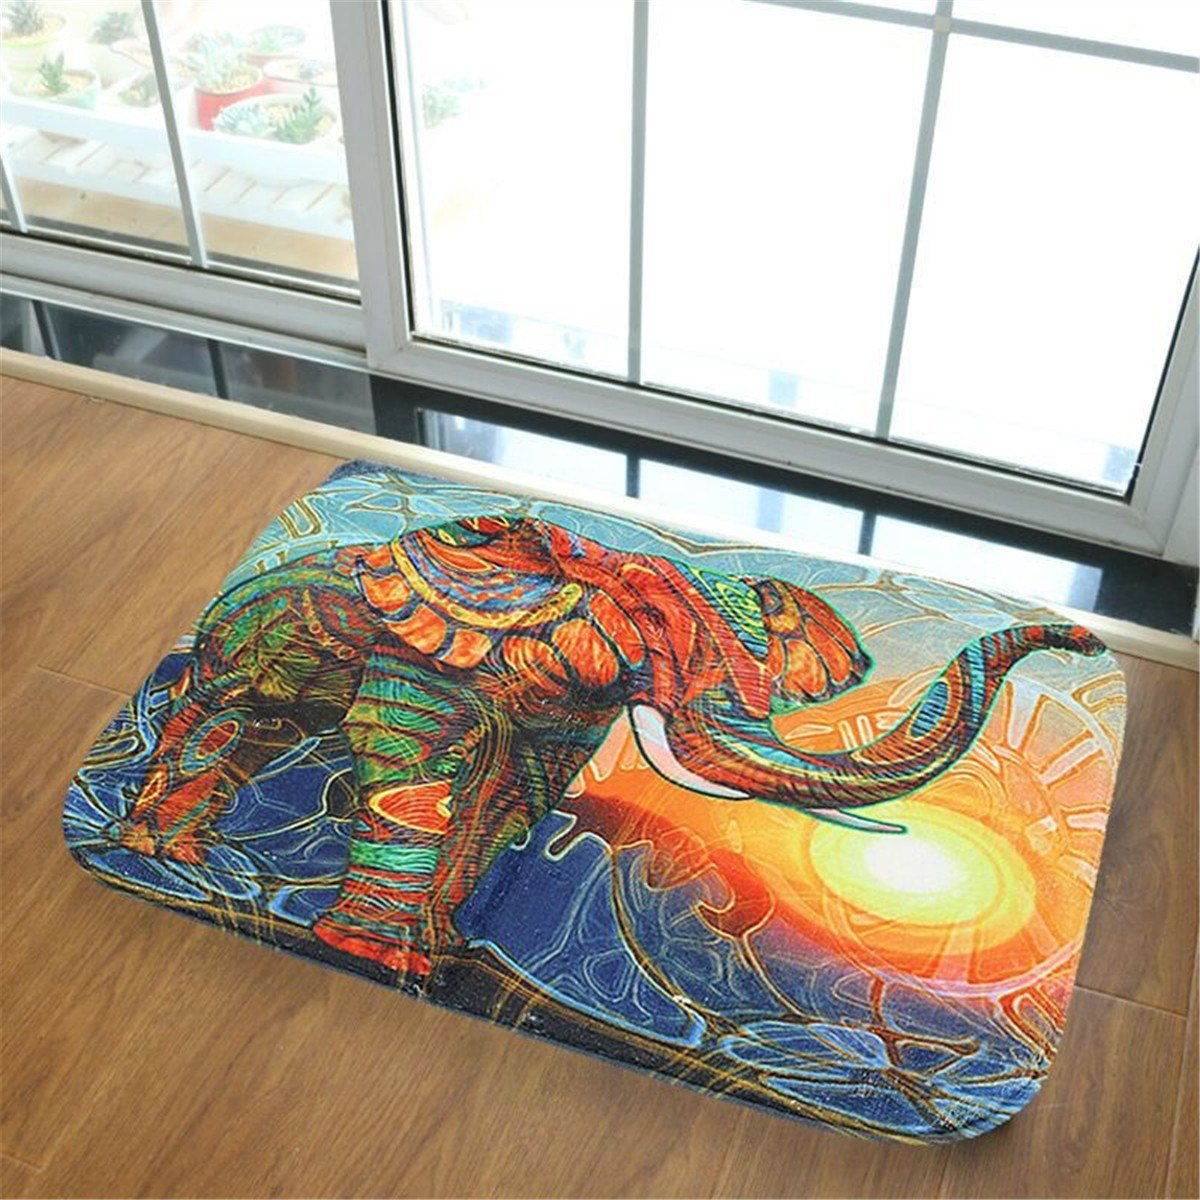 Best 40X60Cm Non Slip Absorbent Memory Foam Carpets Bath With Pictures